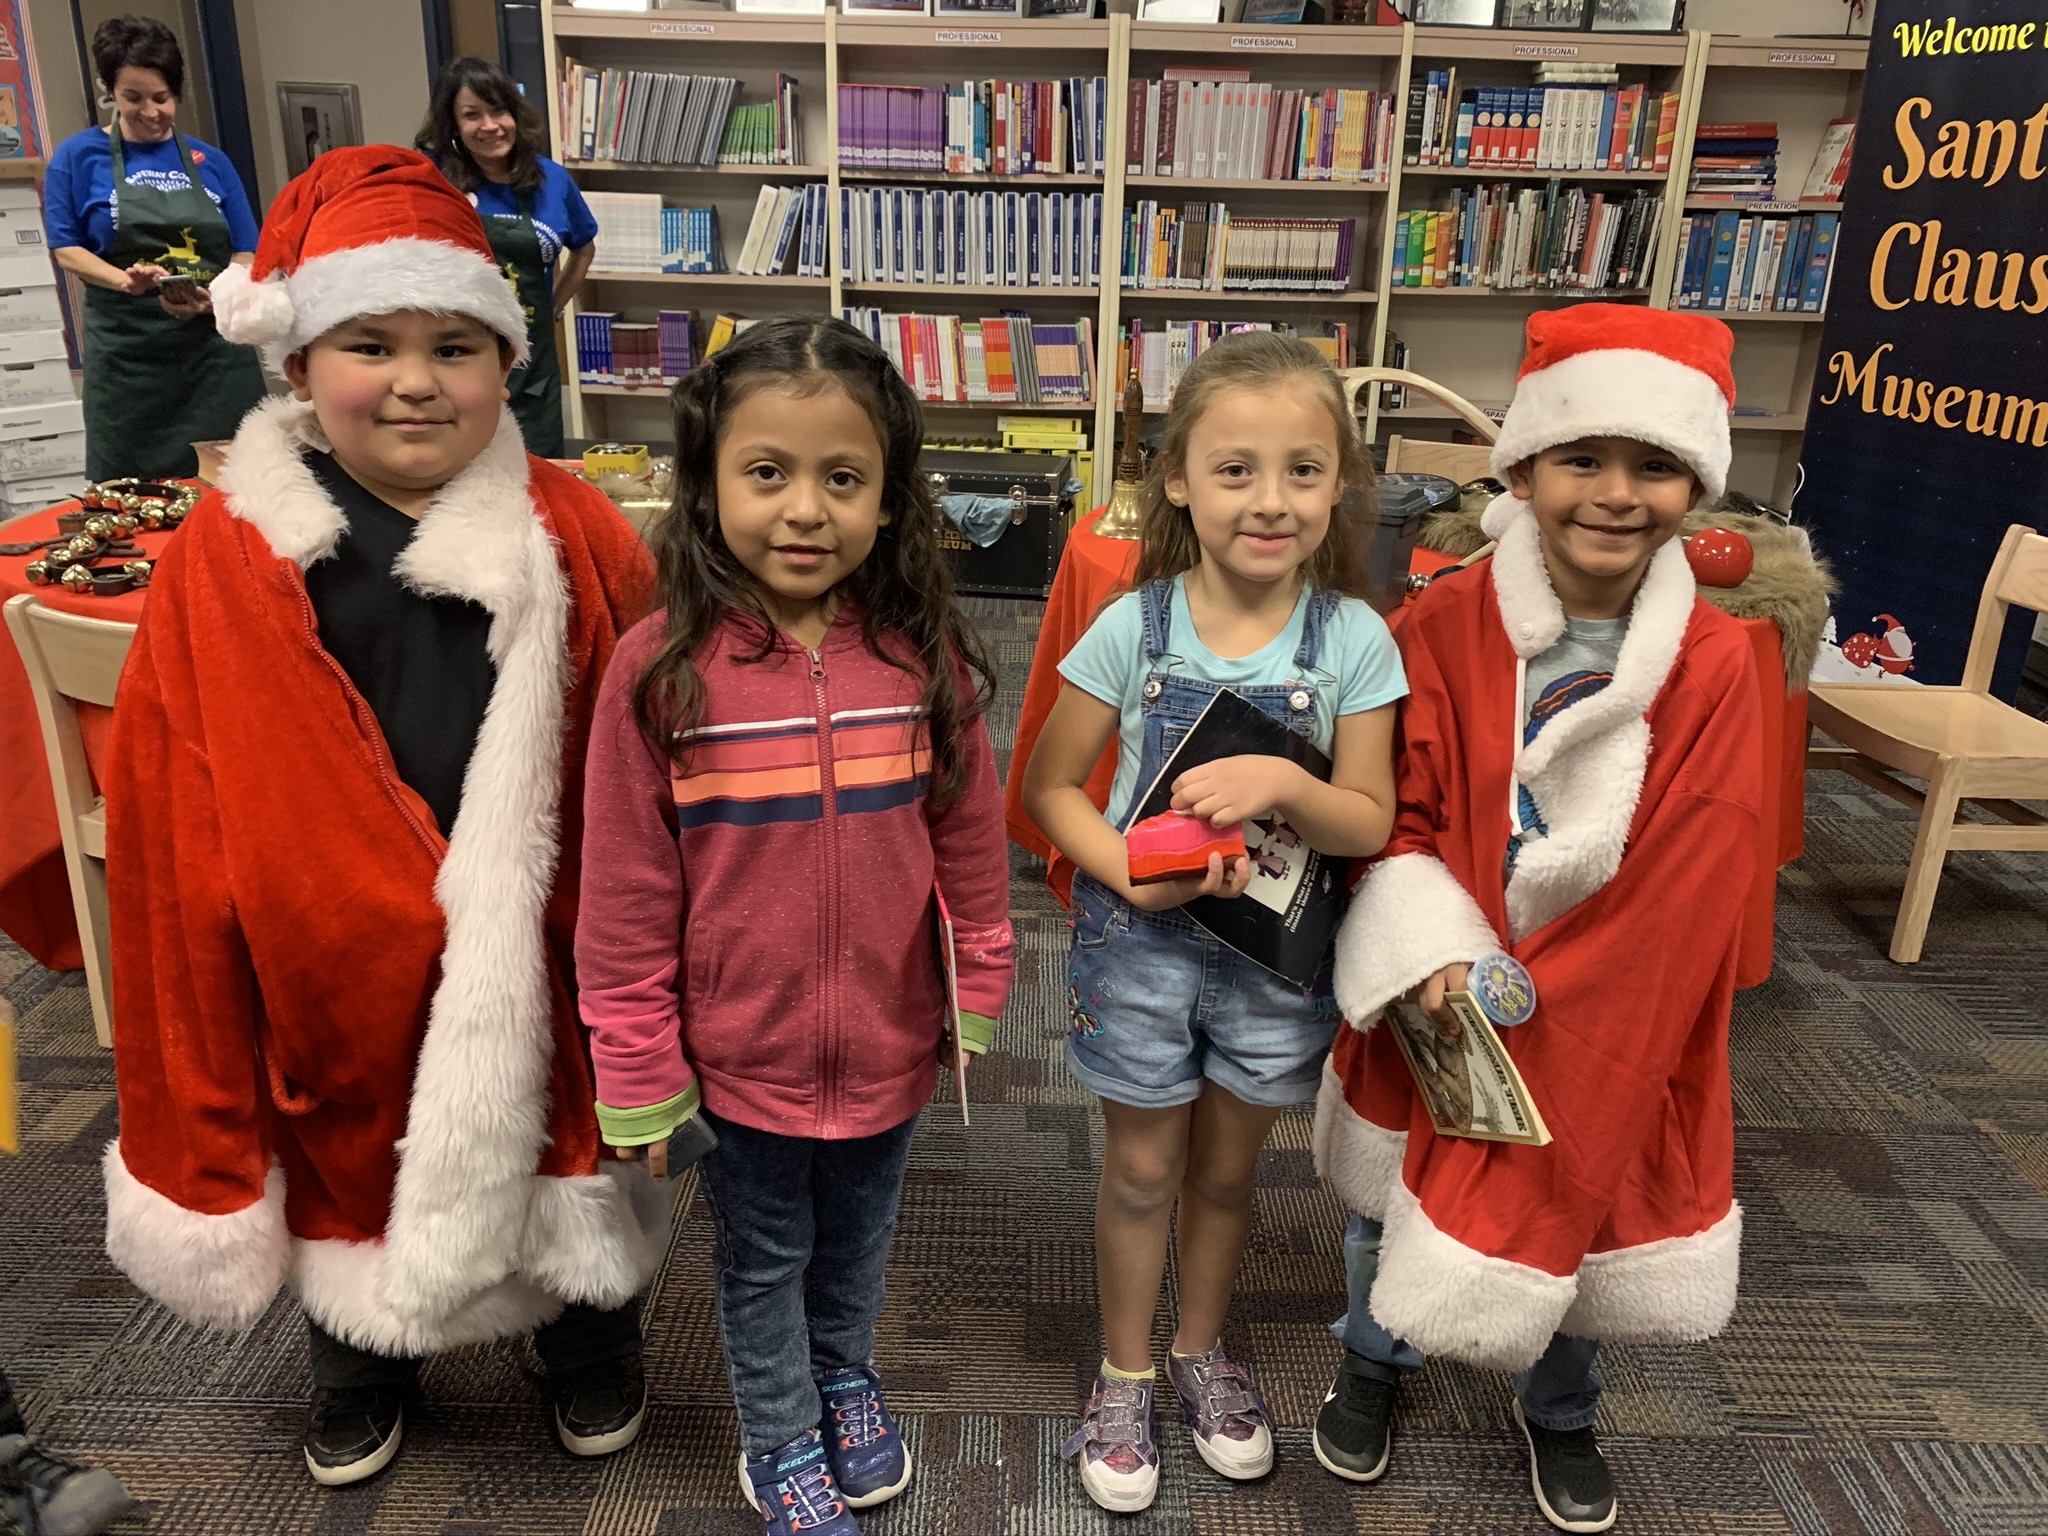 School, Community Help Make Students' Holidays Bright